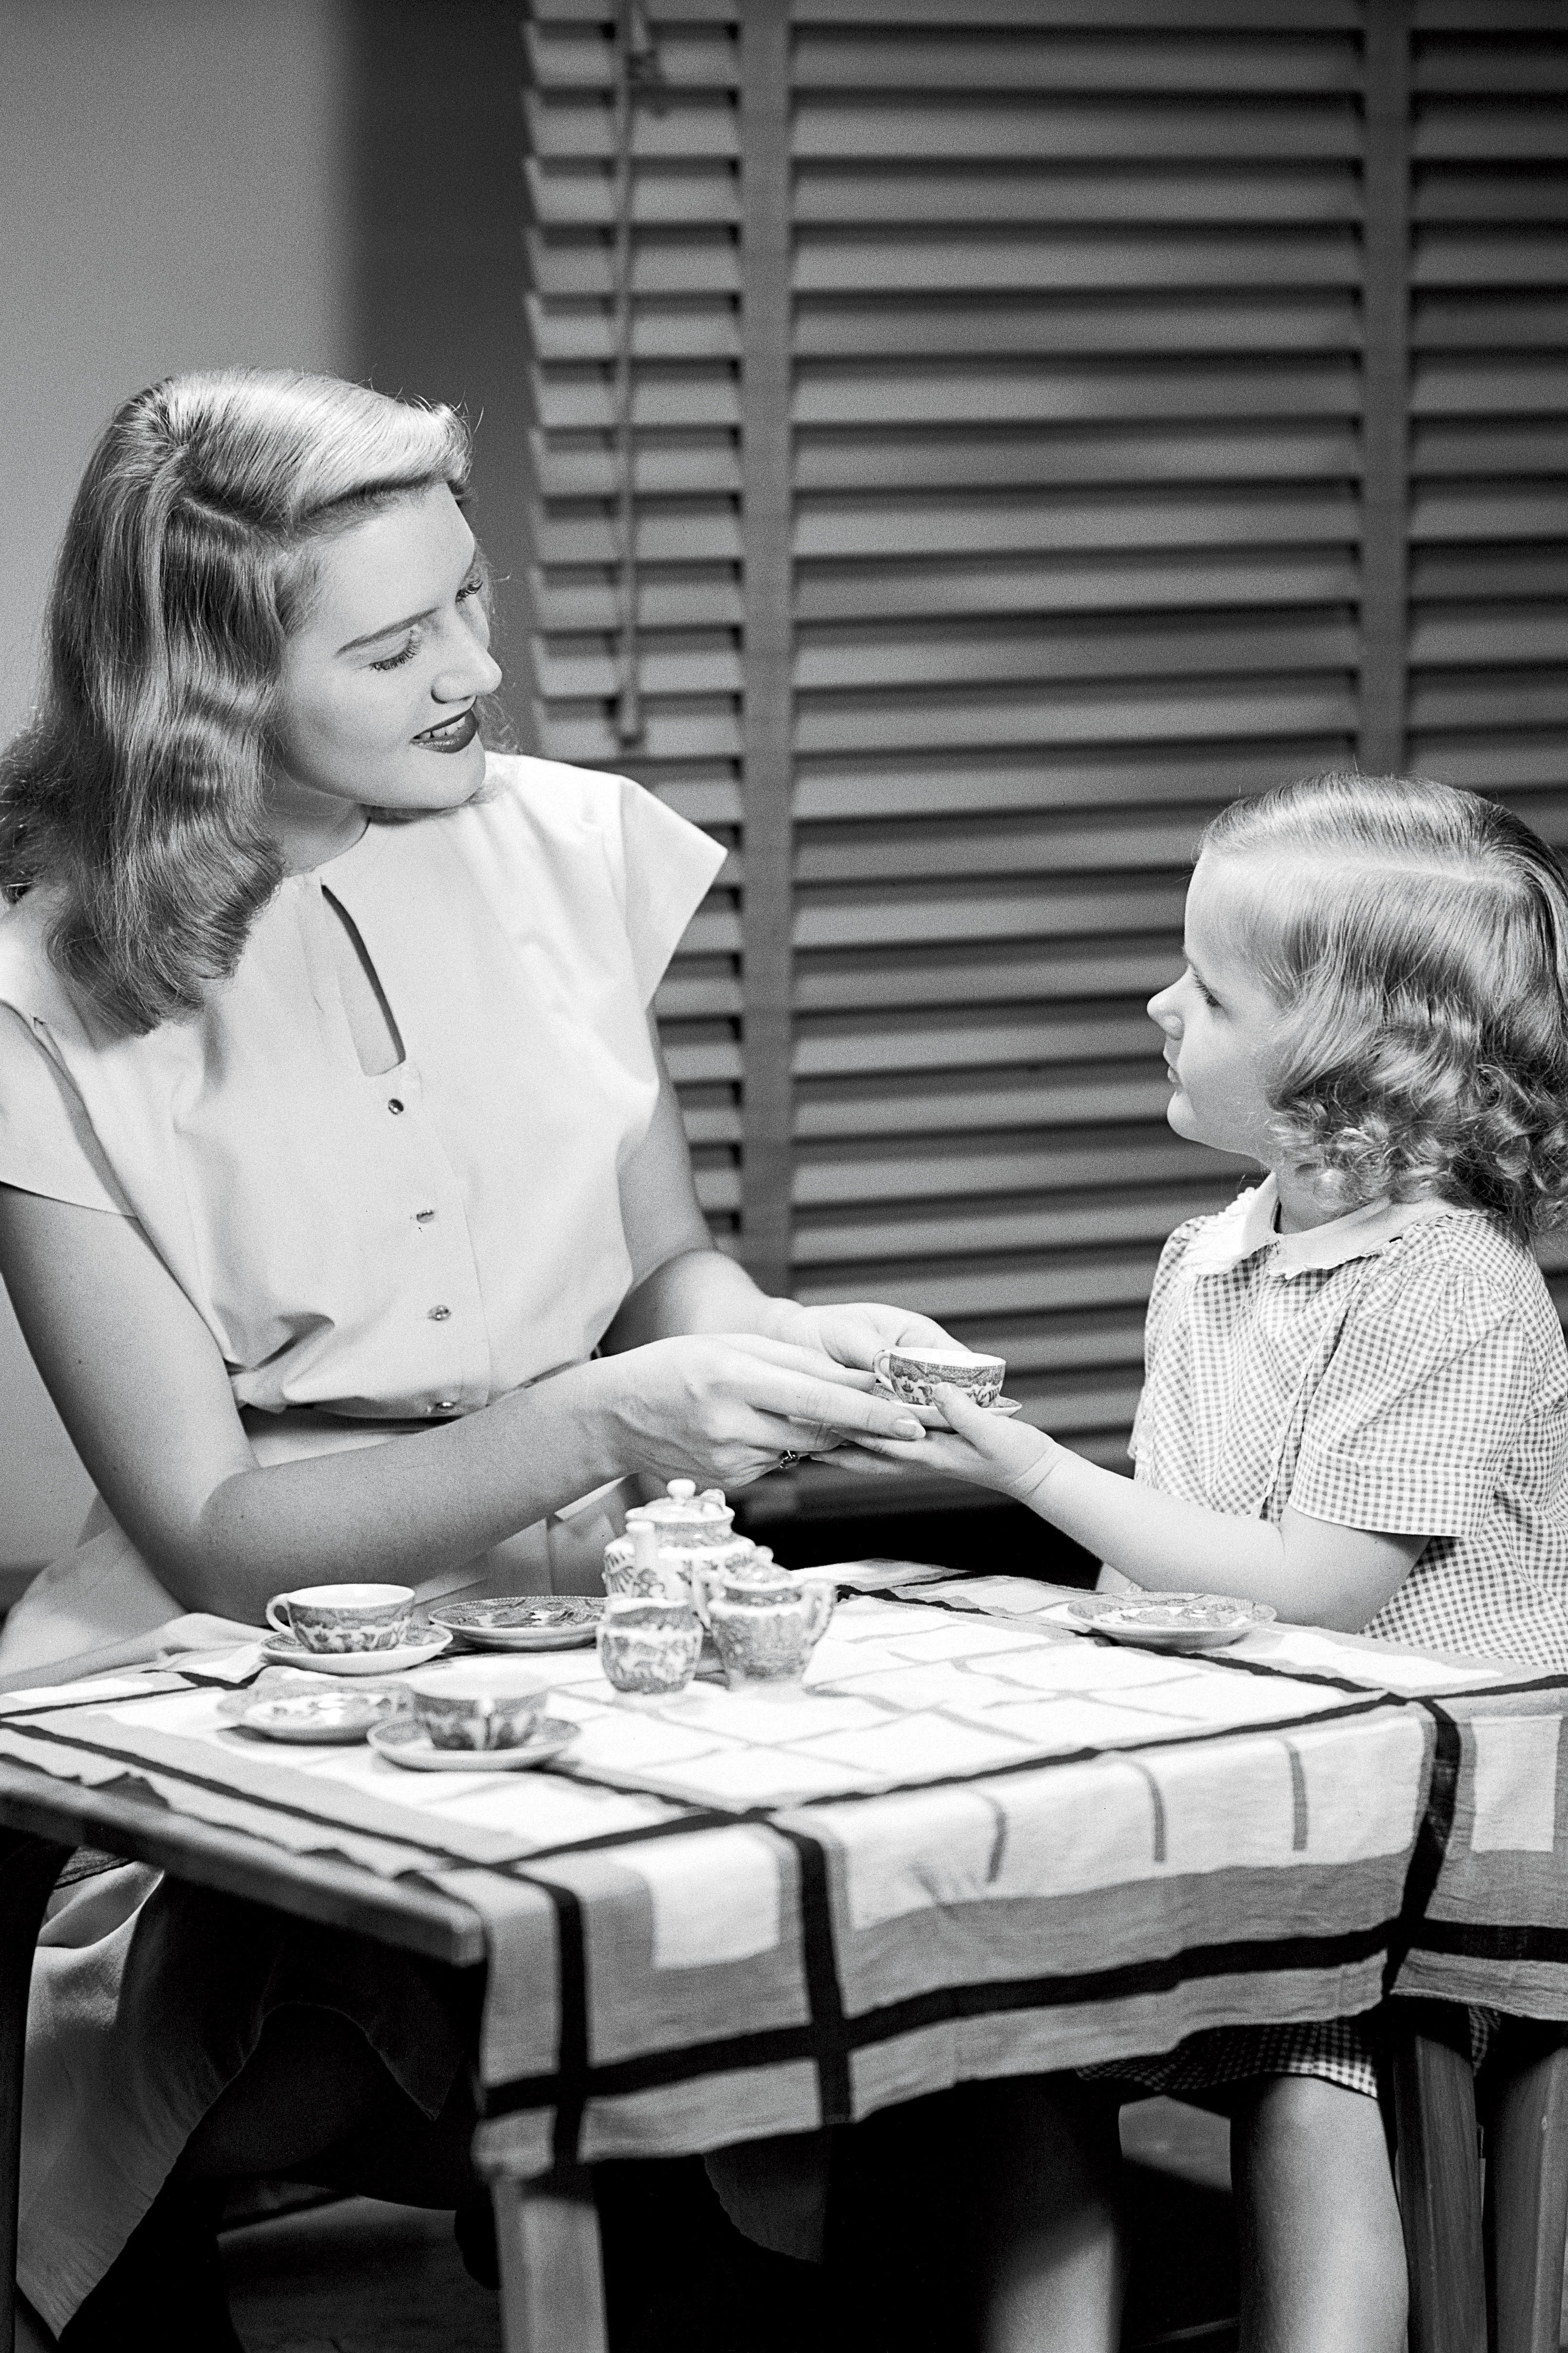 The Importance of Teaching Children Good Manners Today